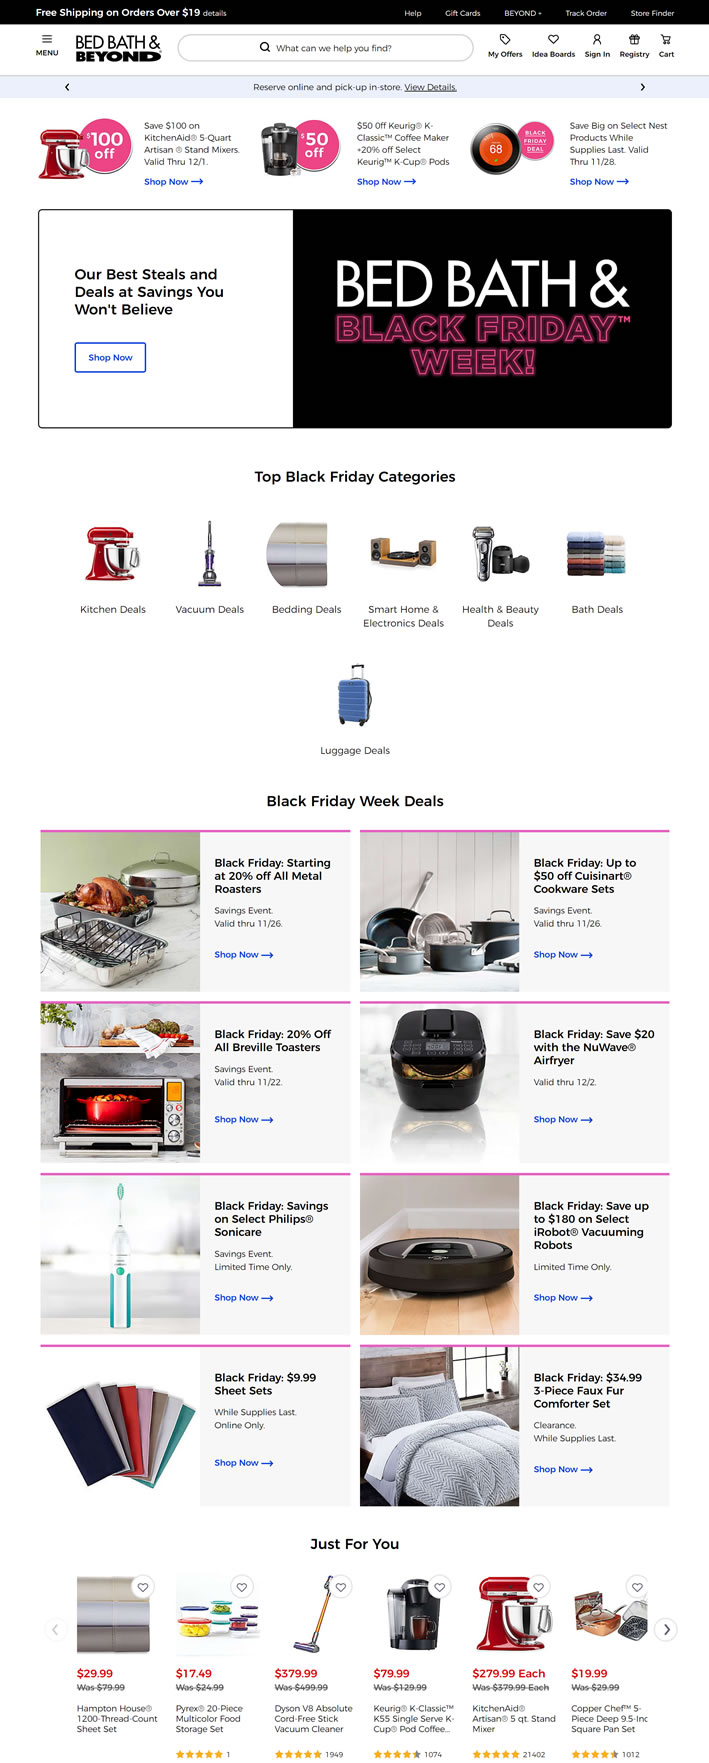 American Famous Household Goods Shopping Website: Bed Bath & Beyond